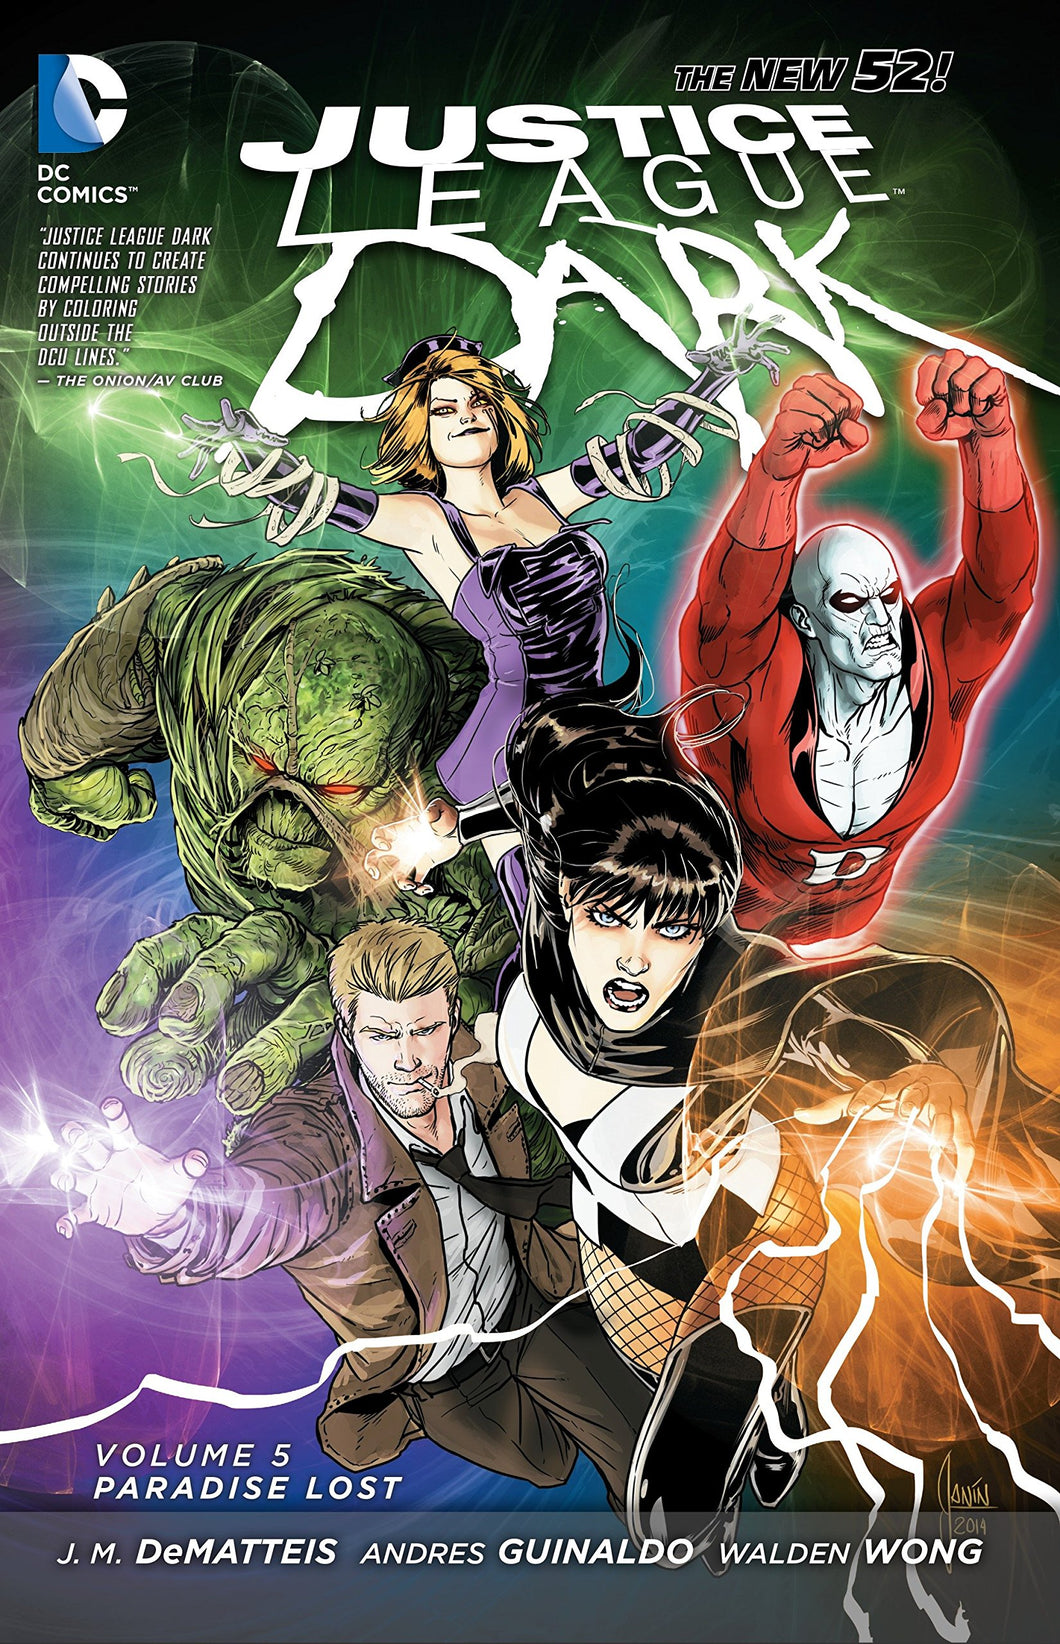 Justice League Dark Vol. 5 : Paradise Lost N.52